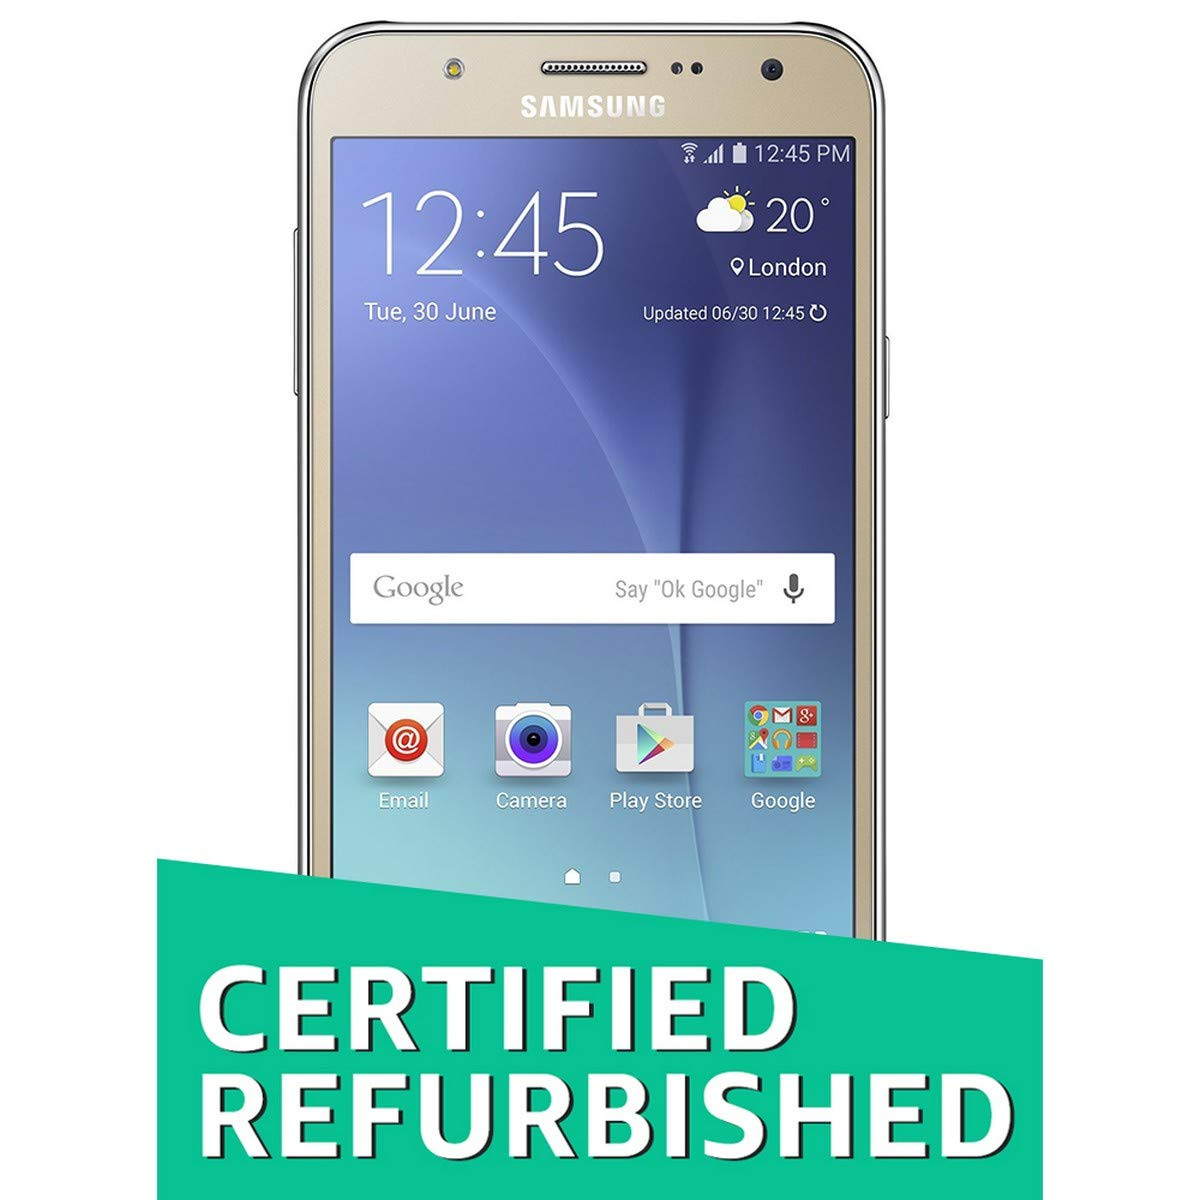 (Certified REFURBISHED) Samsung Galaxy J7 SM-J700F (Gold, 16GB)